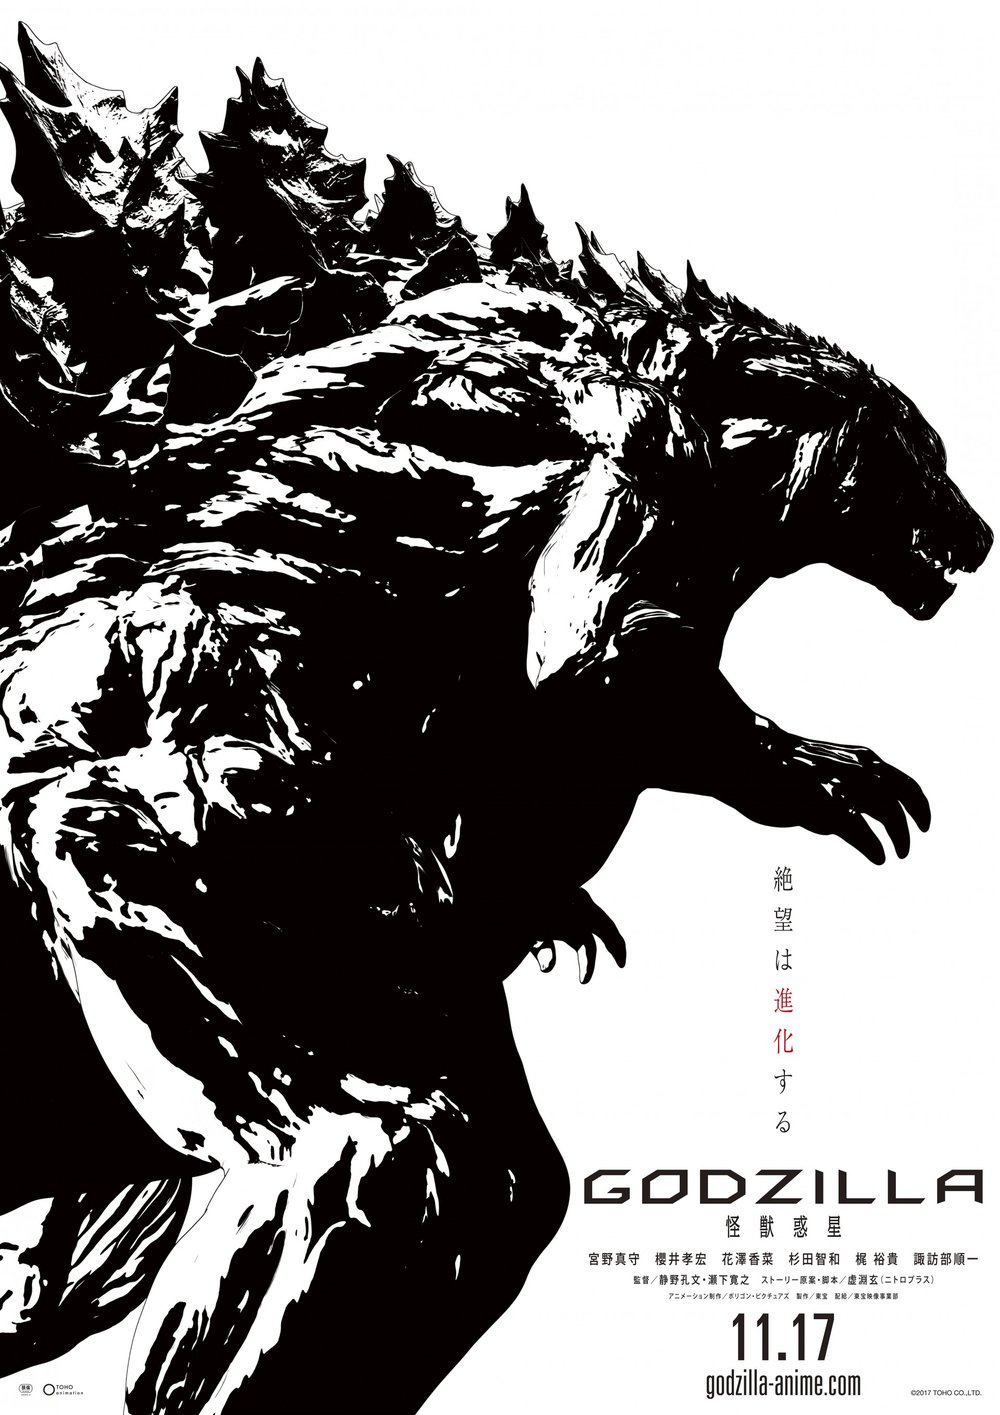 first-trailer-for-tohos-godzilla-monster-palnet-anime-film3